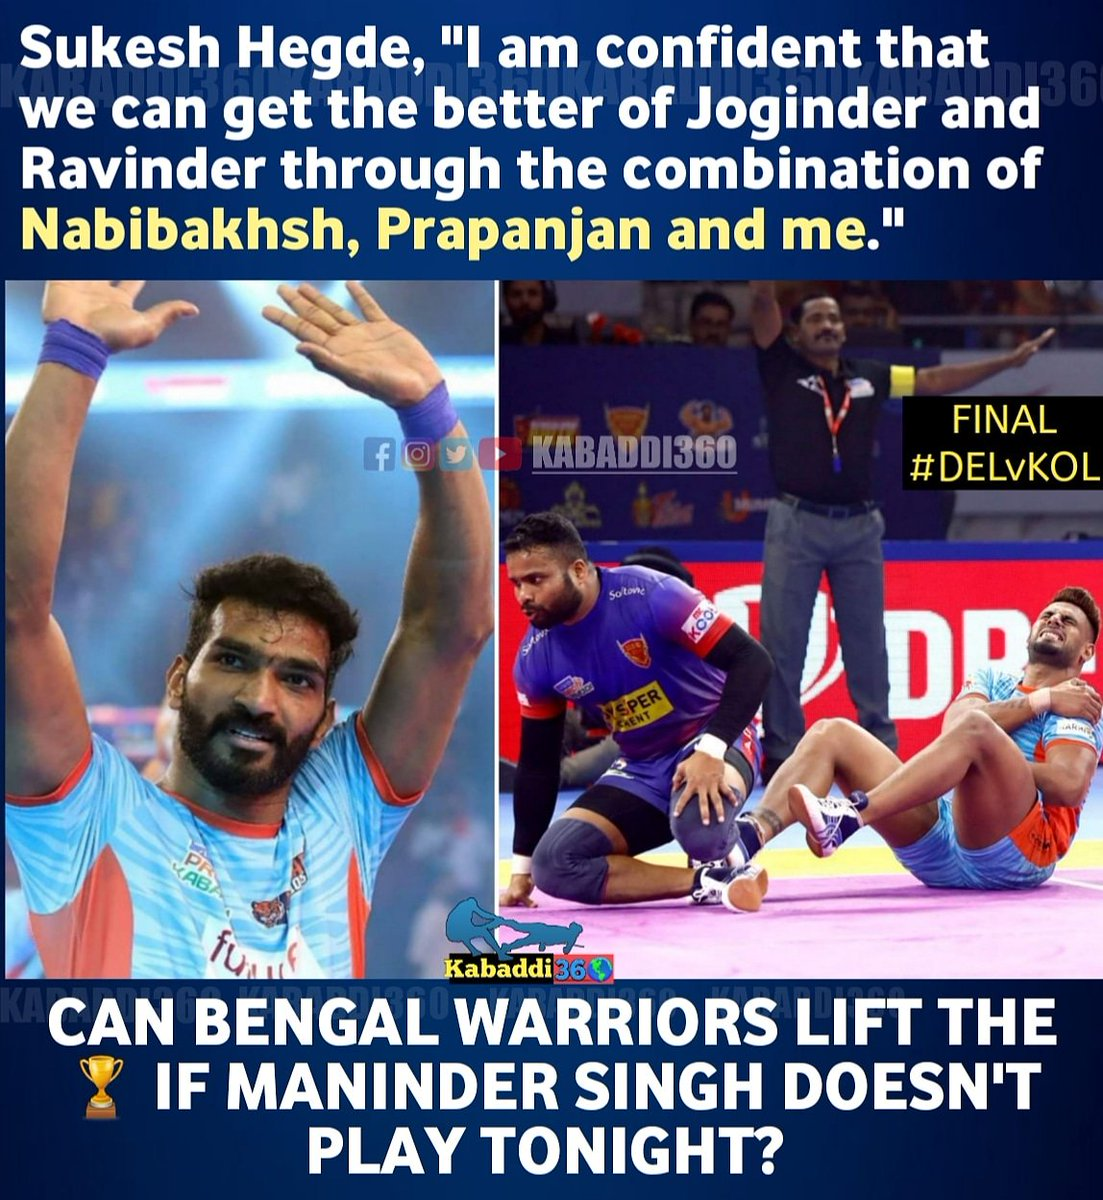 Could Maninder Singh's presence play a vital role tonight in #DELvKOL? What's your take?  #vivoProKabaddiFinal  #Issetoughkuchnahi  #PKLwithkabaddi360